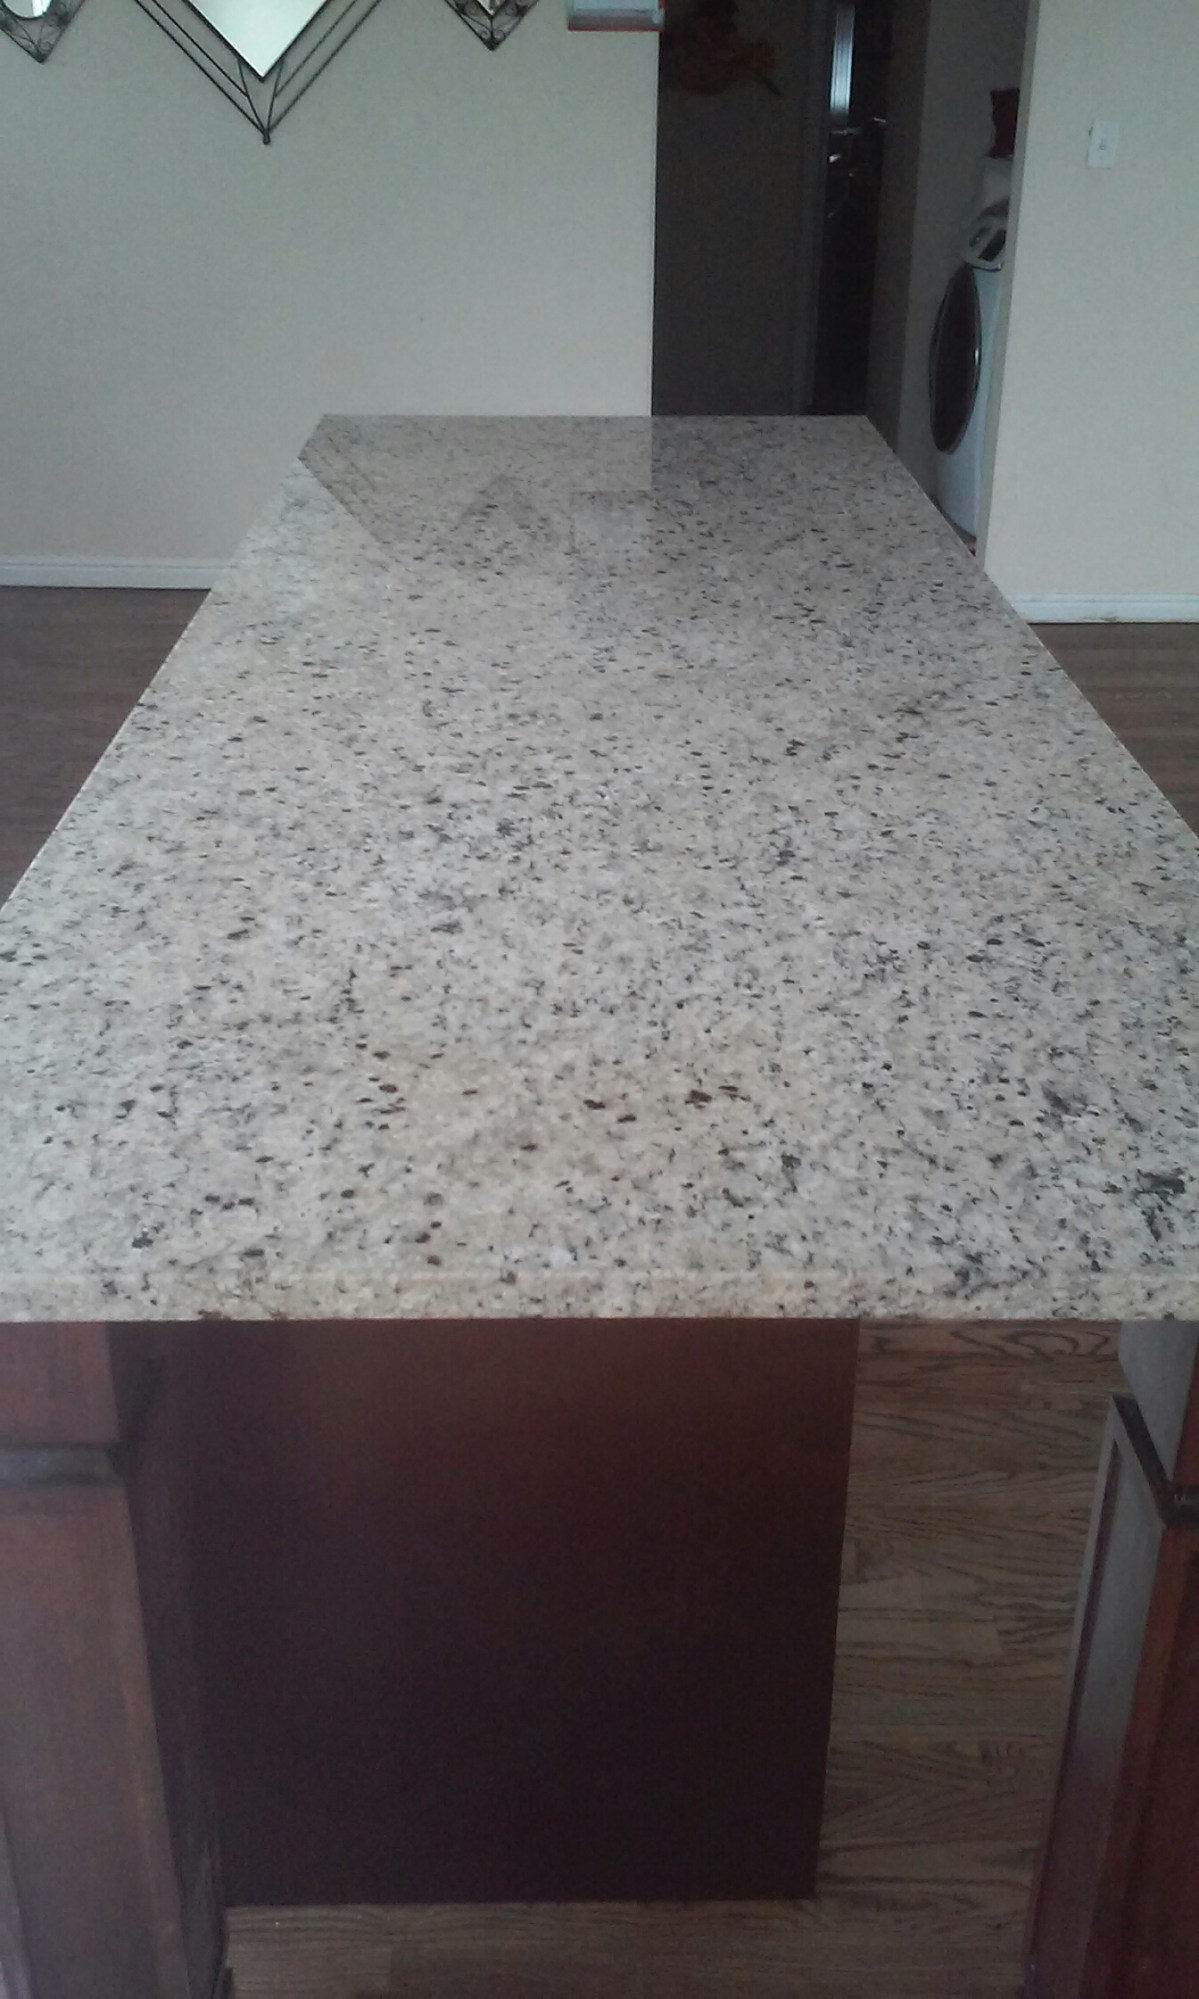 Ogden, UT - Granite Countertop Cleaning sealing and polishing in Ogden, Utah.  We recently added this service to our many other services that we clean.  Look how shiny and new that turned out! www.mrcd.com 801-298-8125